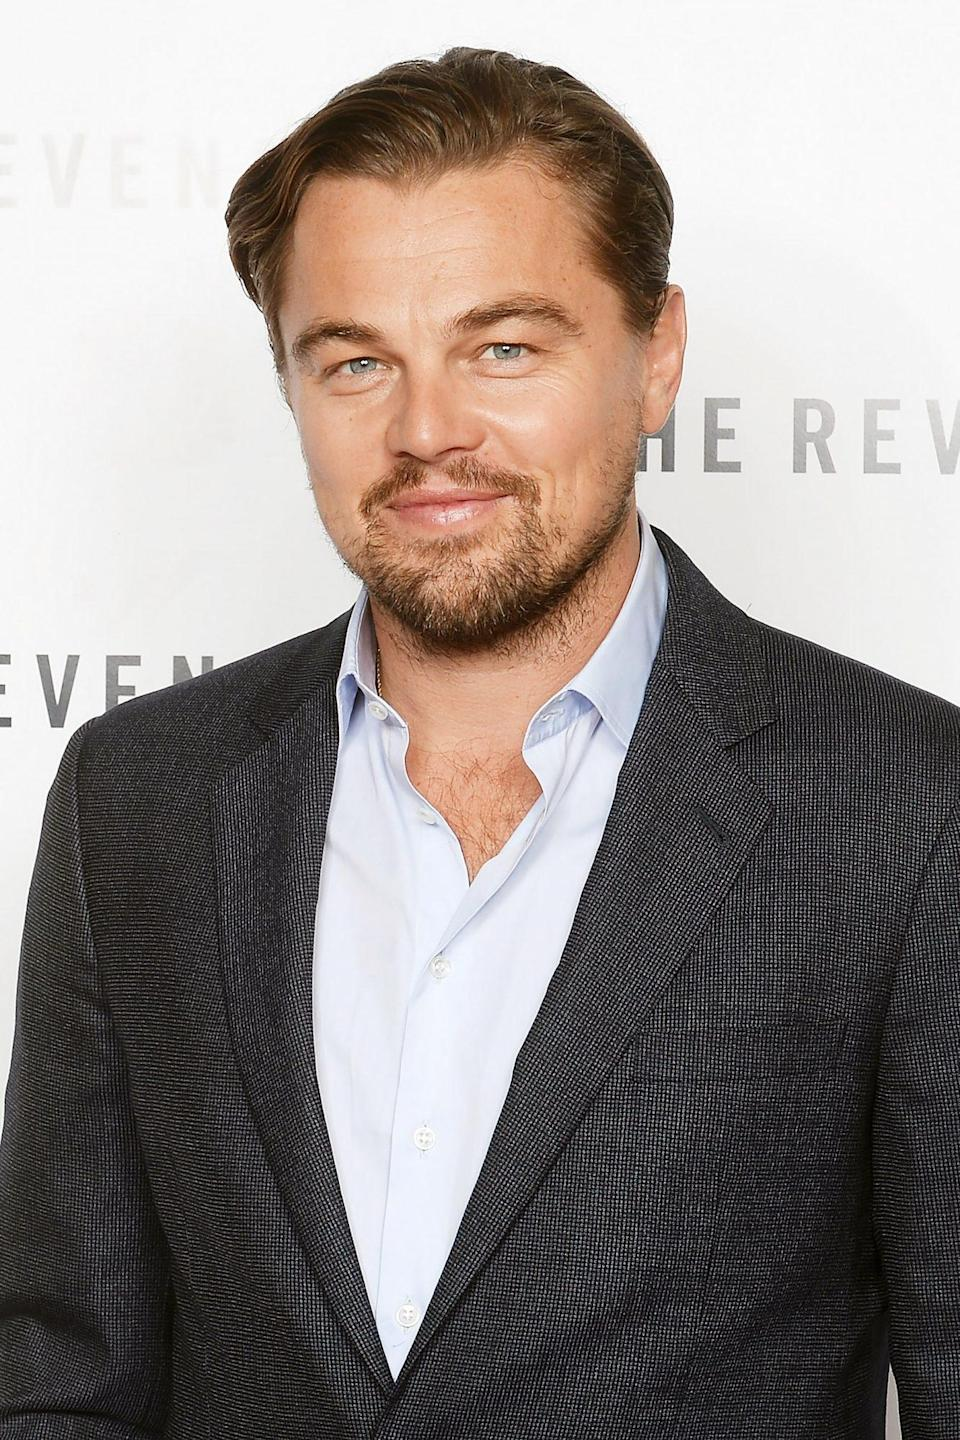 """<p>One of Hollywood's most prominent and outspoken climate change activists, DiCaprio launched a namesake foundation in 1998 to """"bring together the best minds in science, conservation and philanthropy to urgently respond to a growing climate crisis and the staggering loss of biodiversity threatening the stability of life on Earth,"""" the organization's website reads. Donations fund projects that help wildlife, marine life, climate change initiatives, indigenous rights, Environment Now and changes in media, science and technology. </p>"""